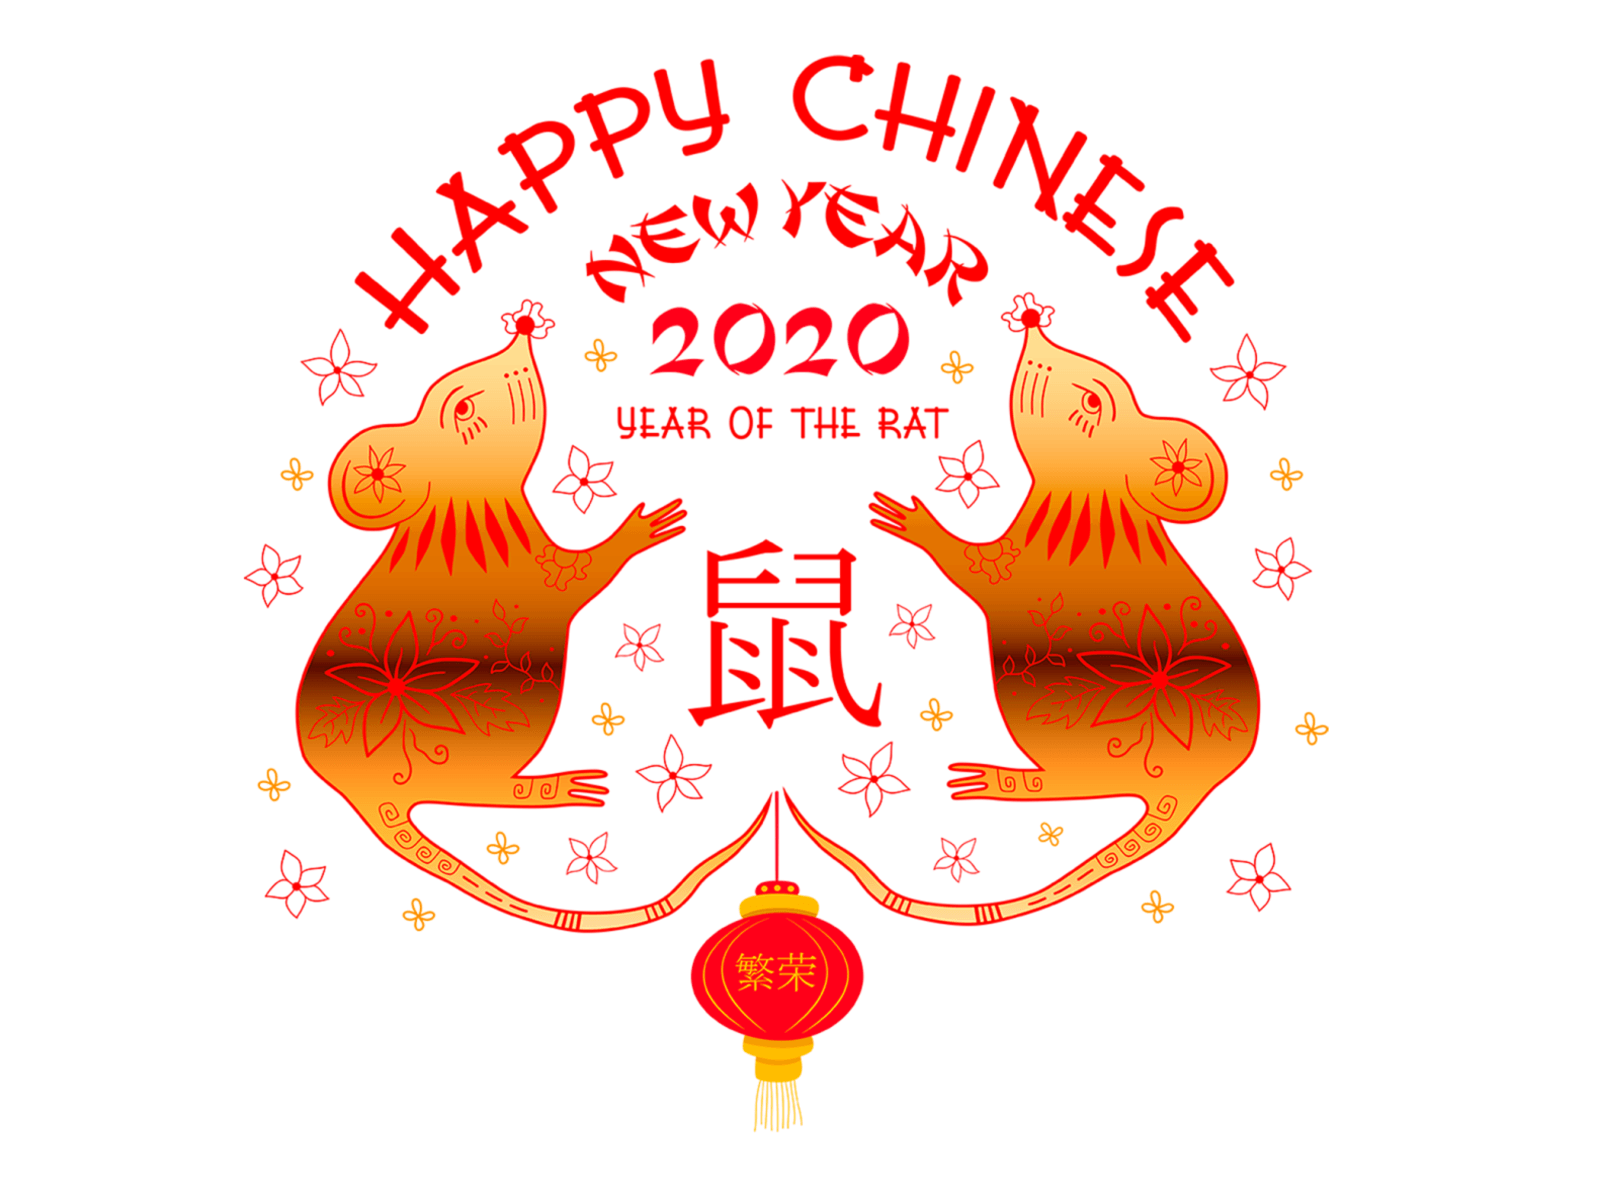 Happy Chinese New Year by Bariss Studio on Dribbble